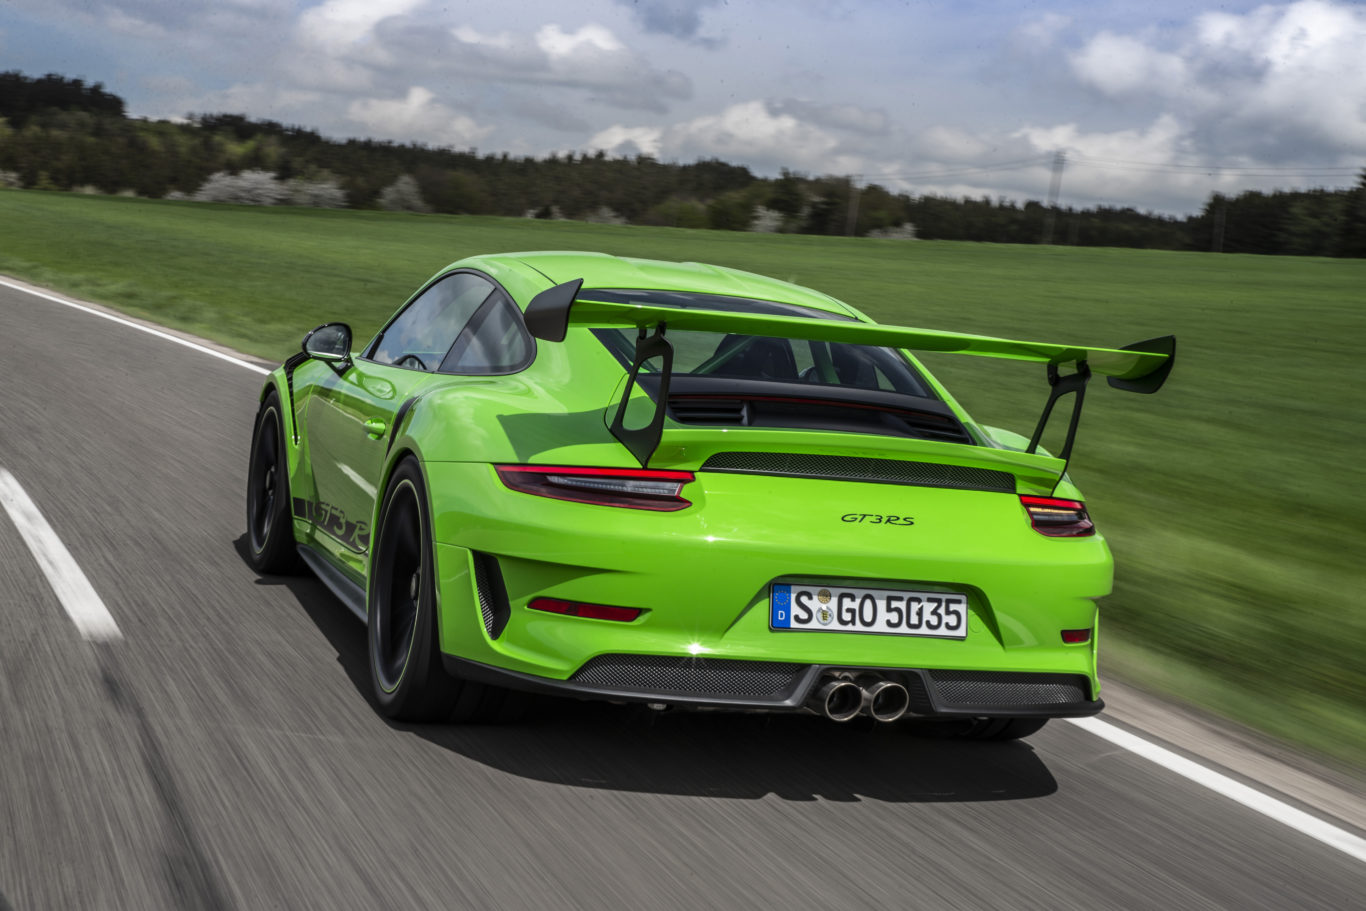 The GT3 RS is a harder, lighter take on the GT3